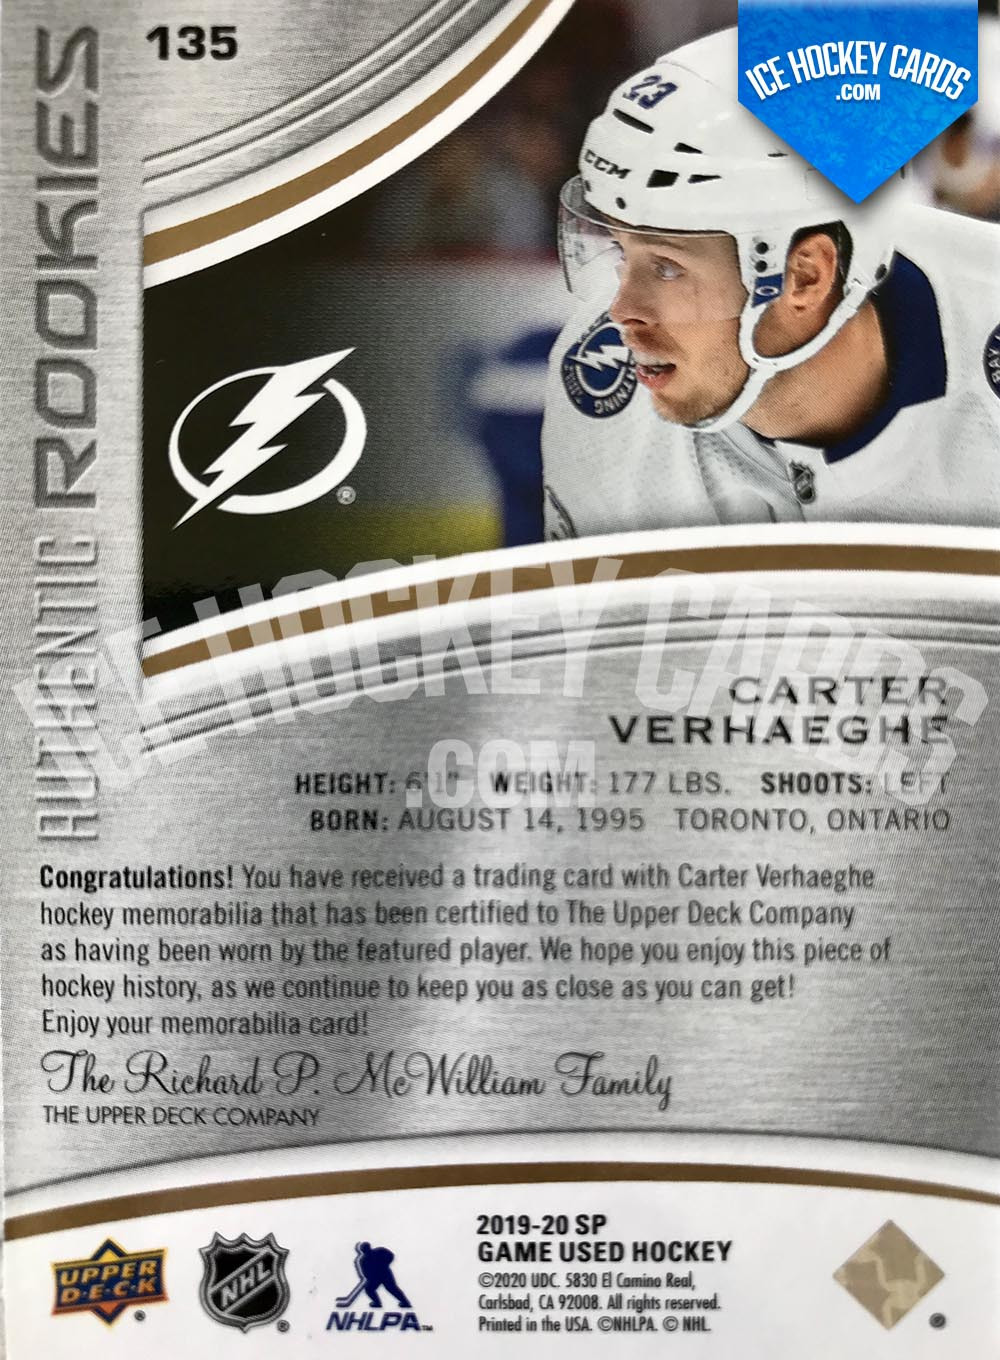 Upper Deck - SP Game Used 2019-20 - Carter Verhaeghe Authentic Rookies Patch Card back